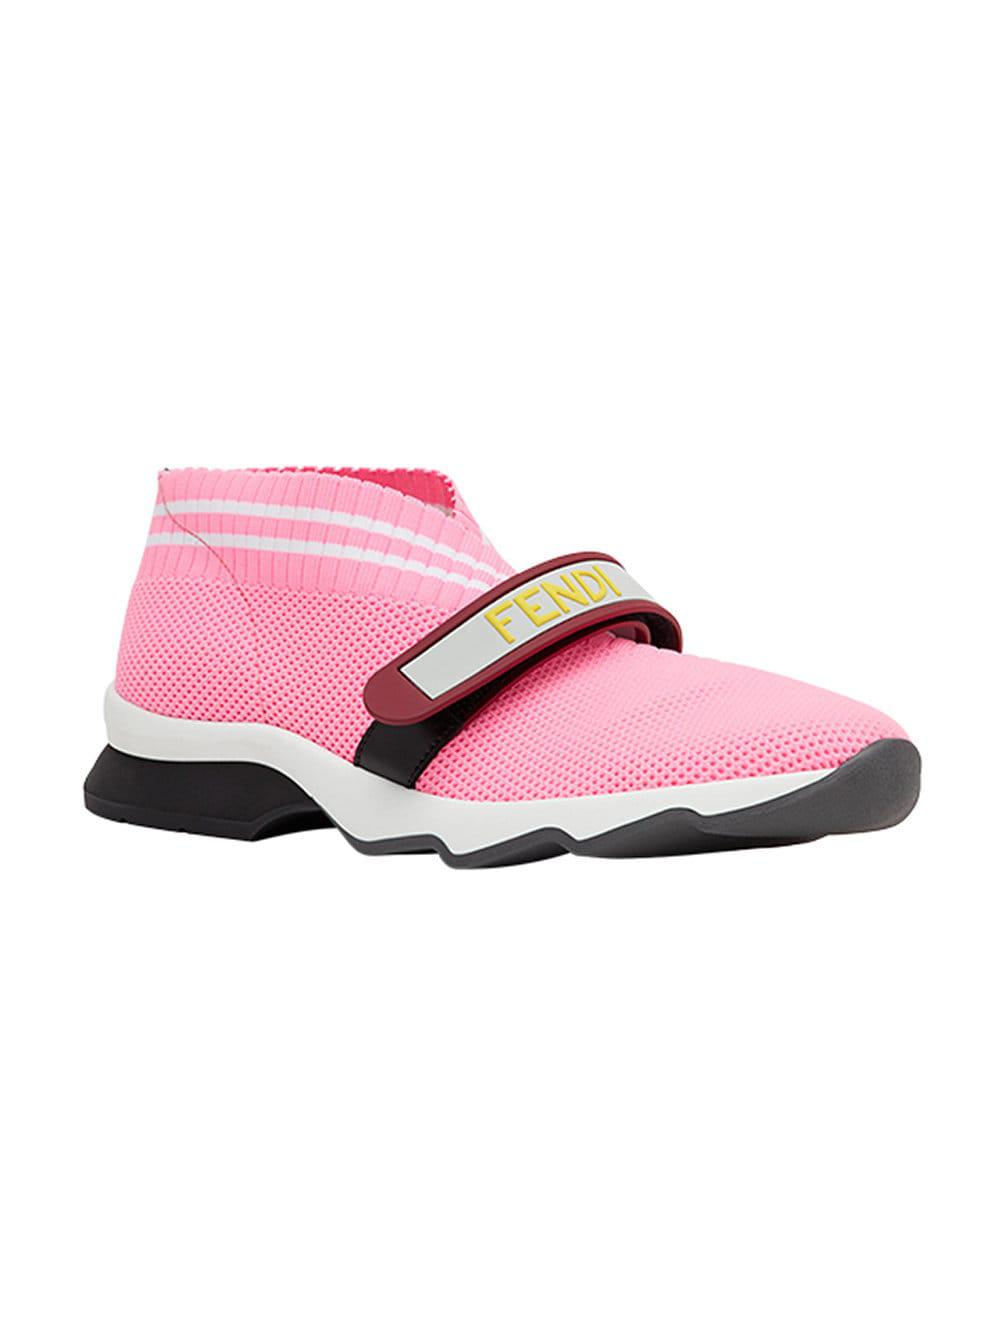 Fendi Leather Perforated Touch Strap Sneakers in Pink